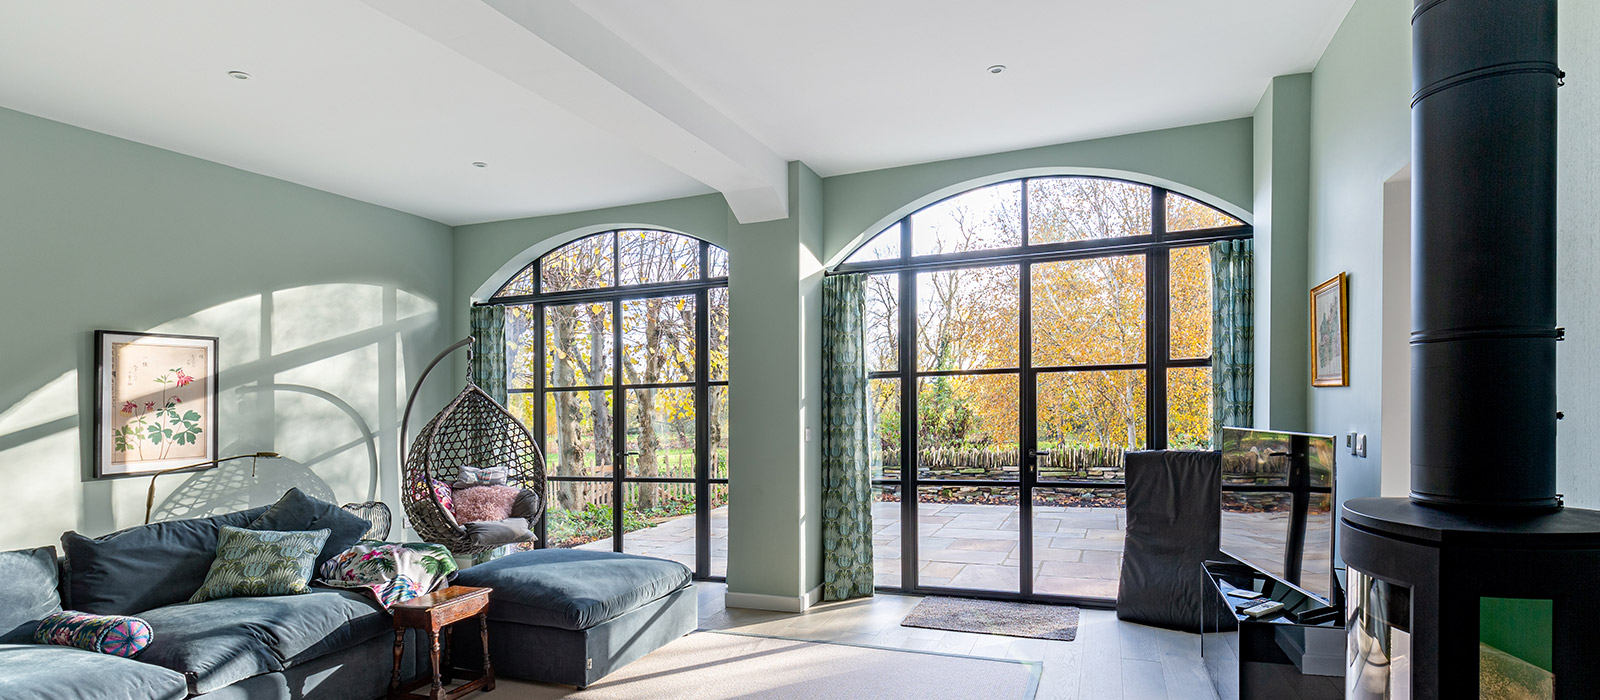 gyd-architecture | new contemporary windows